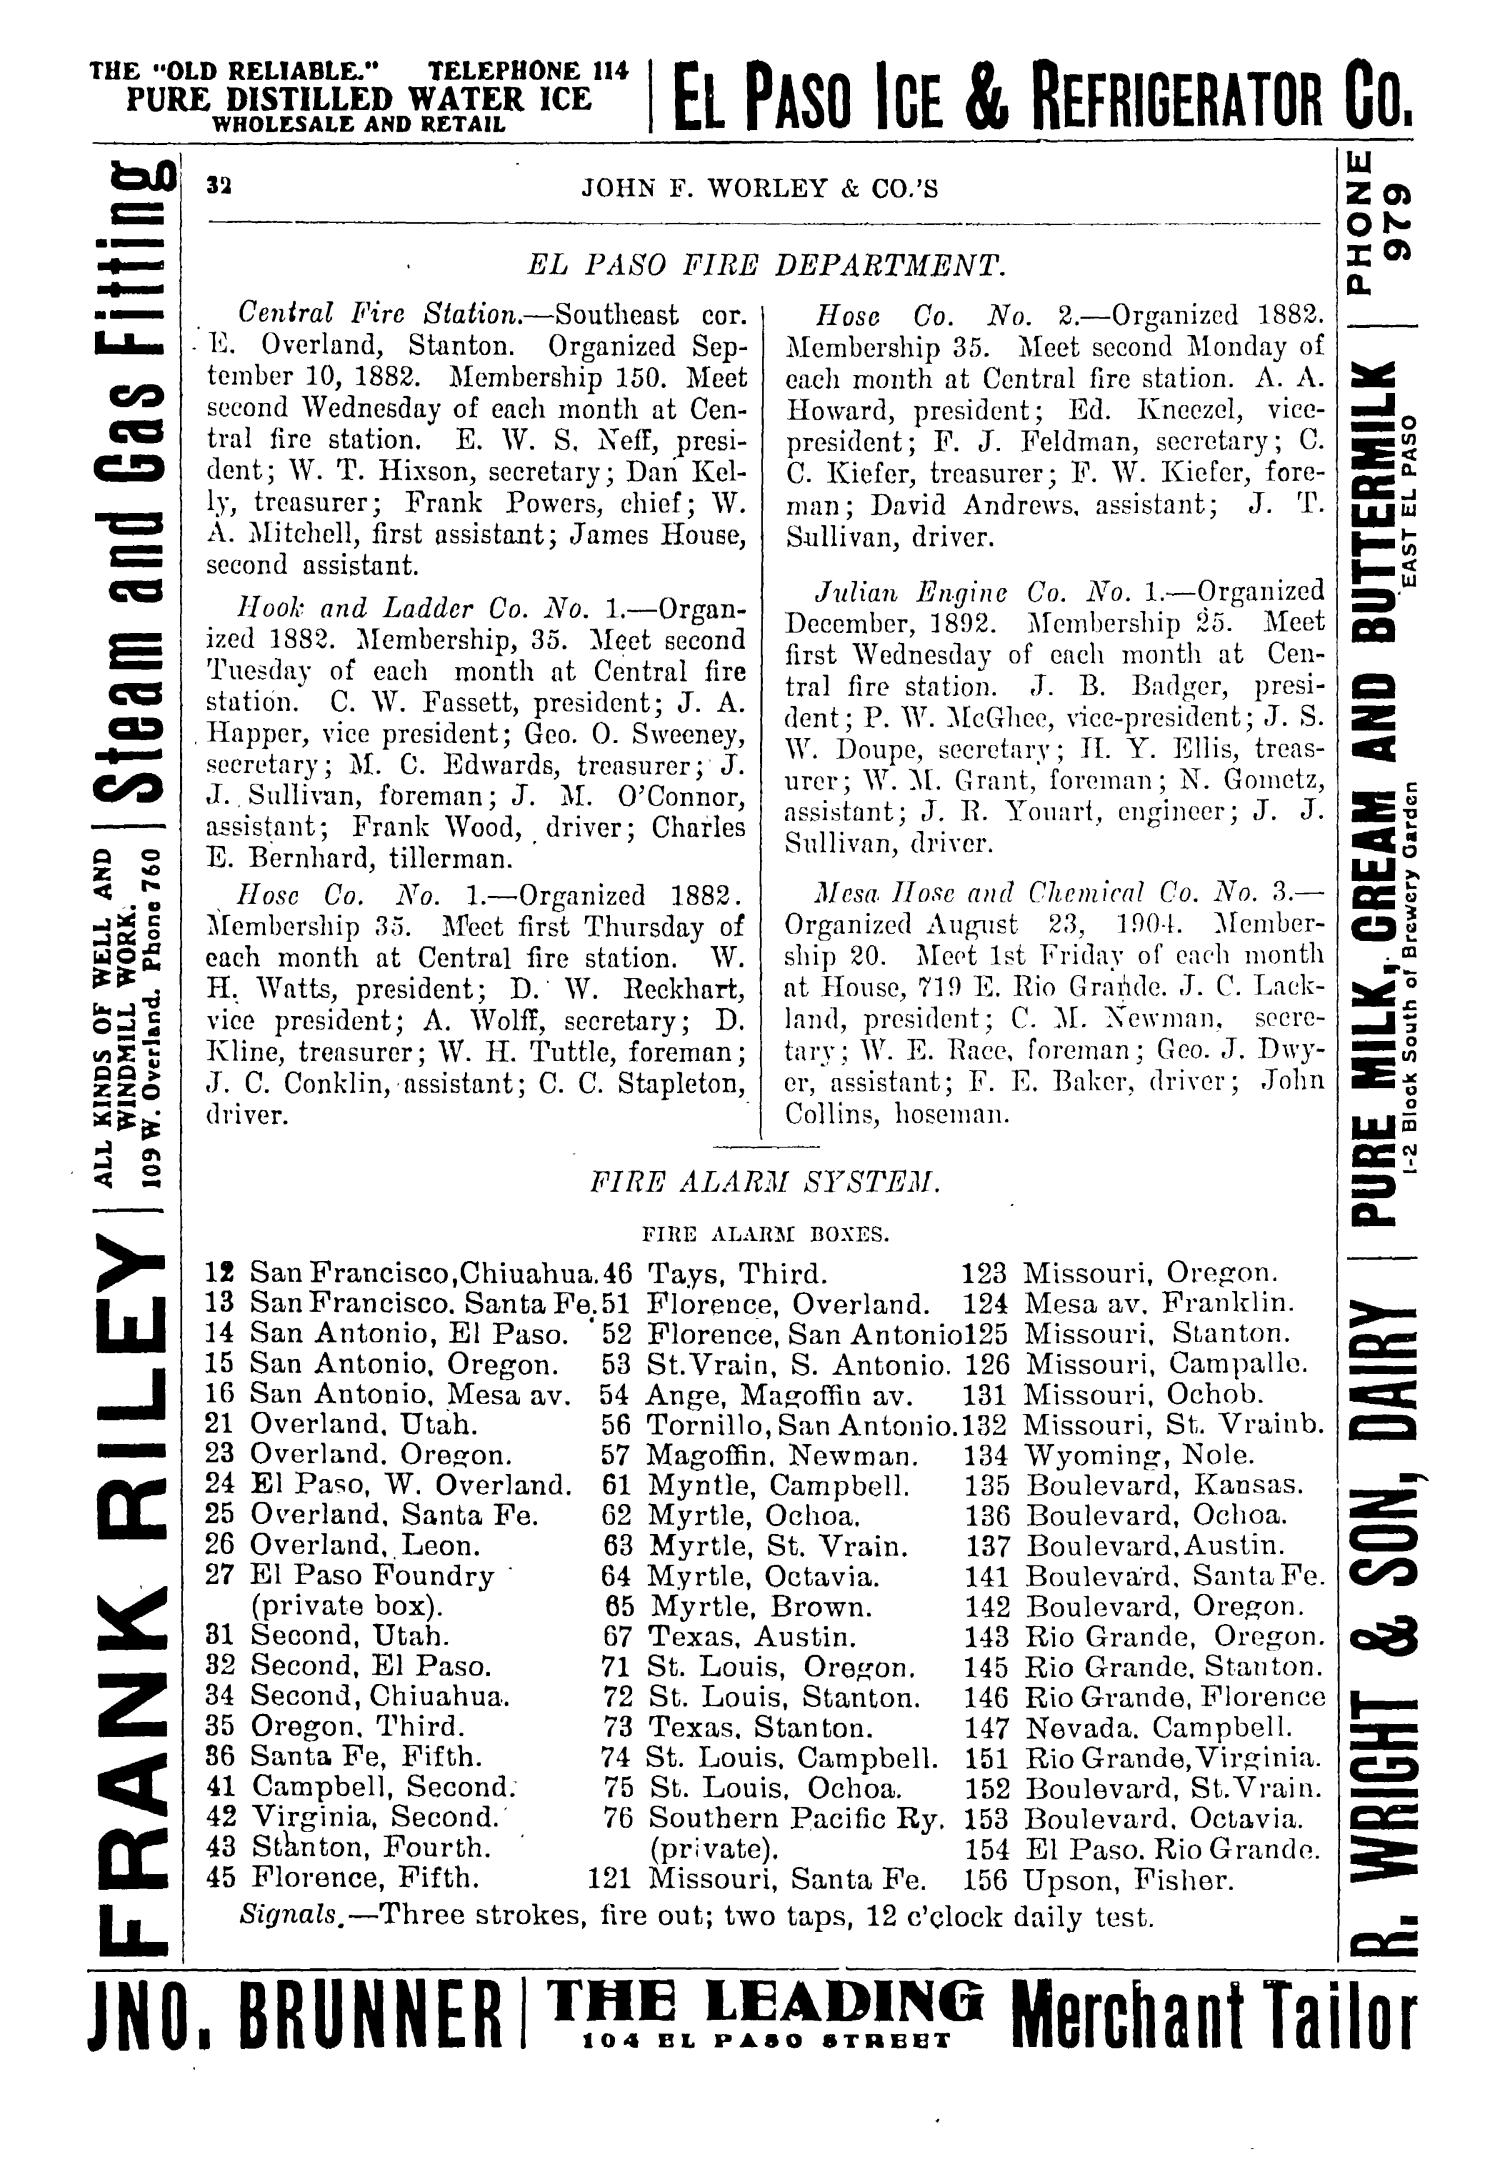 John F. Worley & Co.'s El Paso Directory for 1906                                                                                                      32